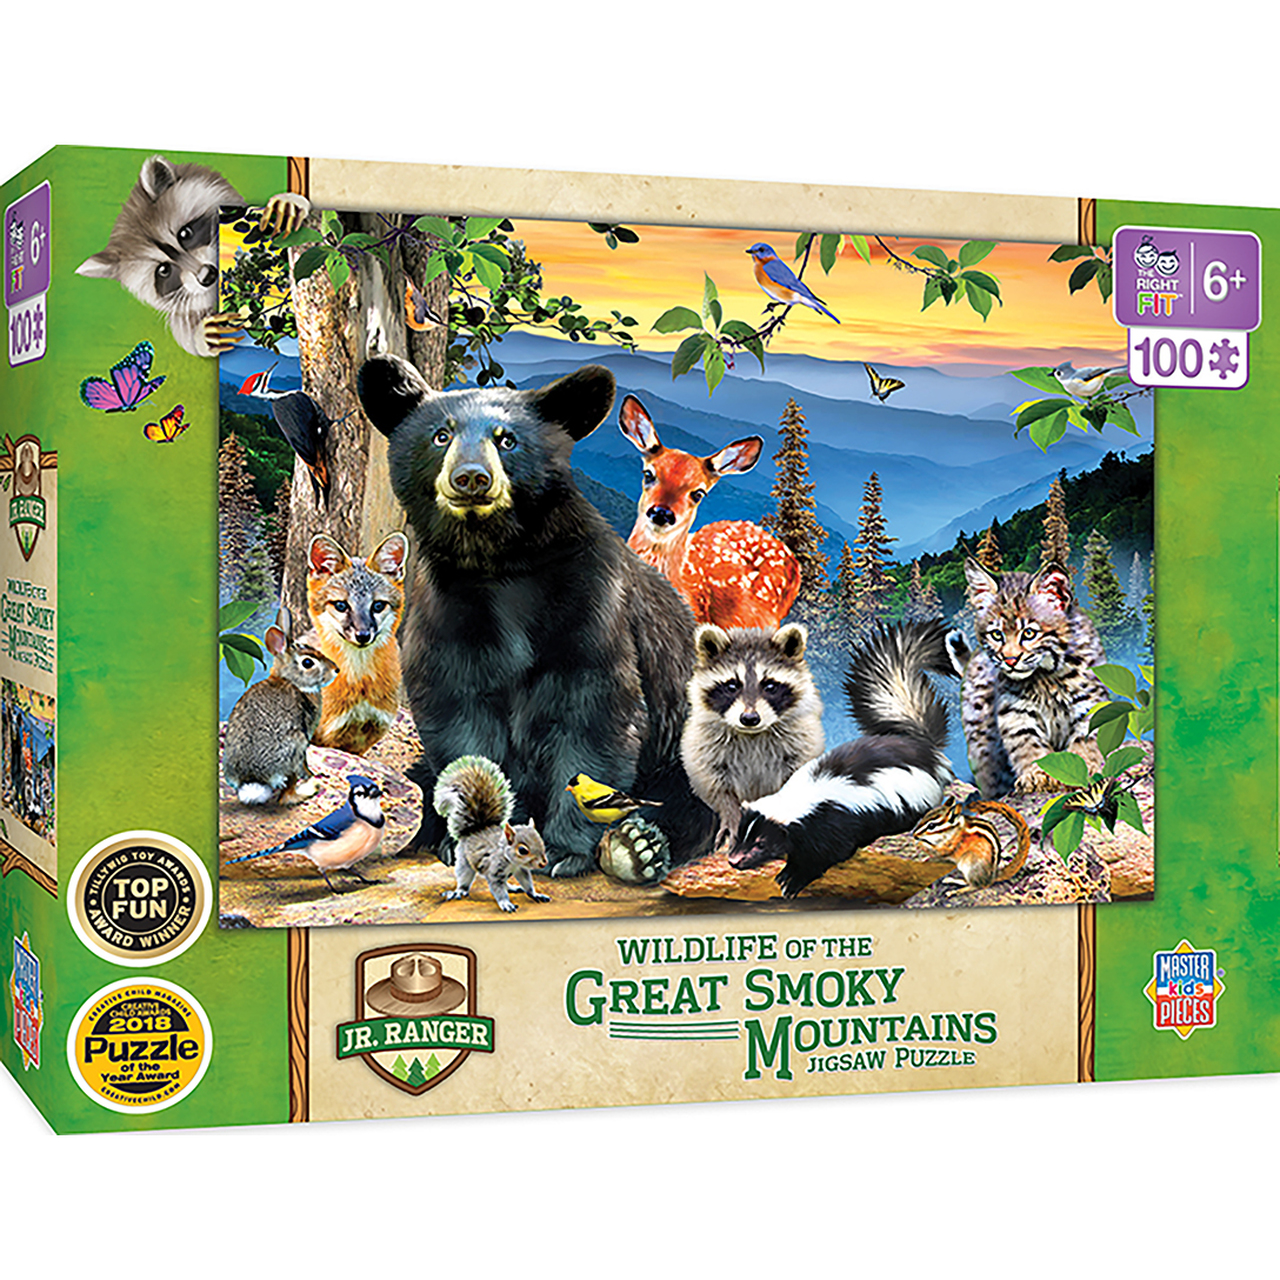 Jr Ranger - Great Smoky Mountains National Park 100pc Puzzle